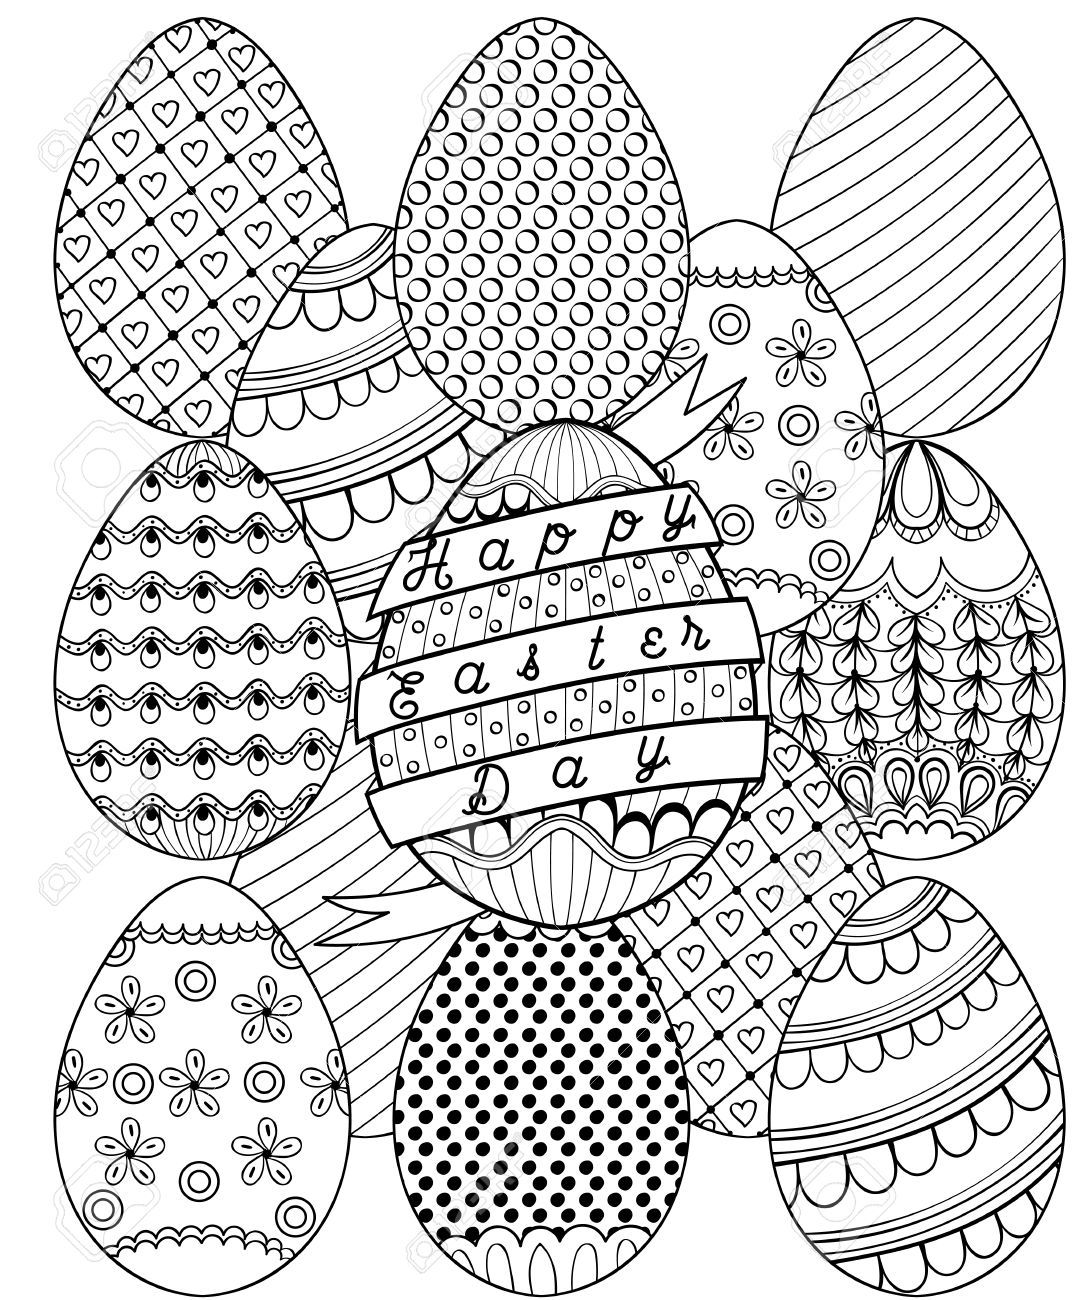 Happy Easter Day Zentangle Coloring Page Spring Coloring Pages Easter Colouring Easter Egg Coloring Pages